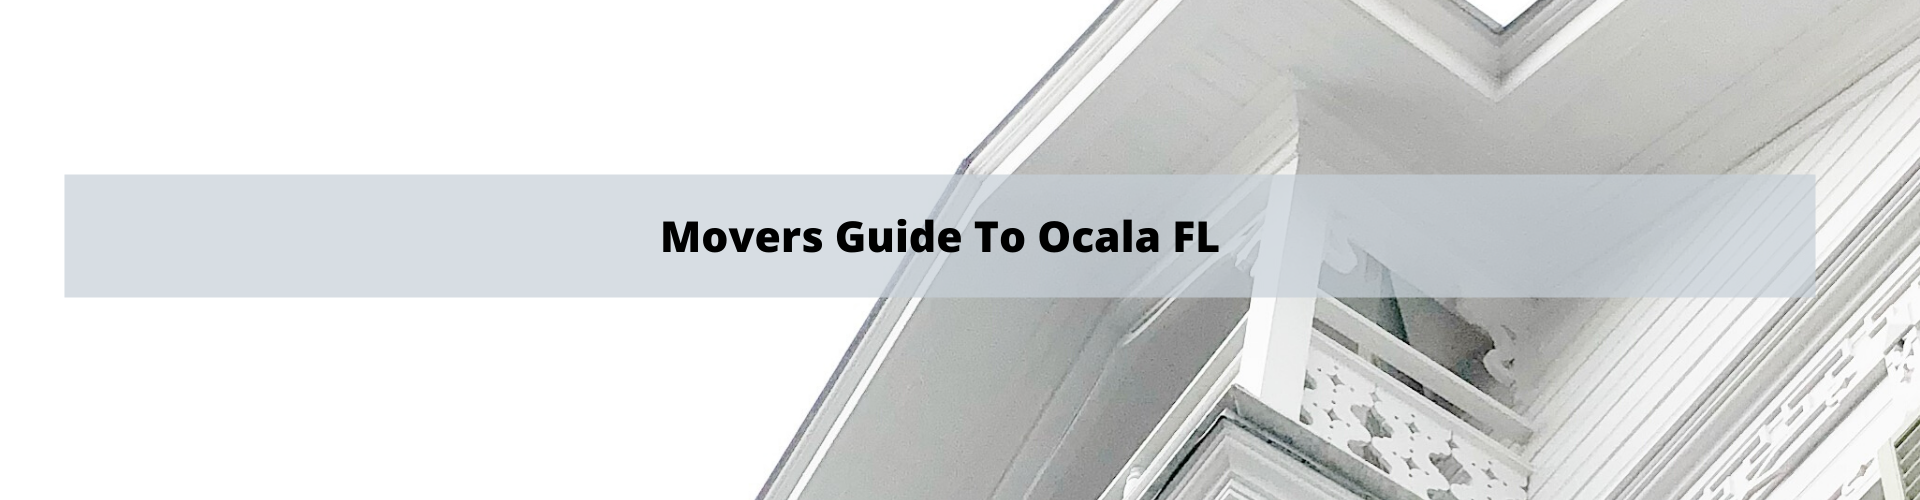 The ultimate movers guide to Ocala FL